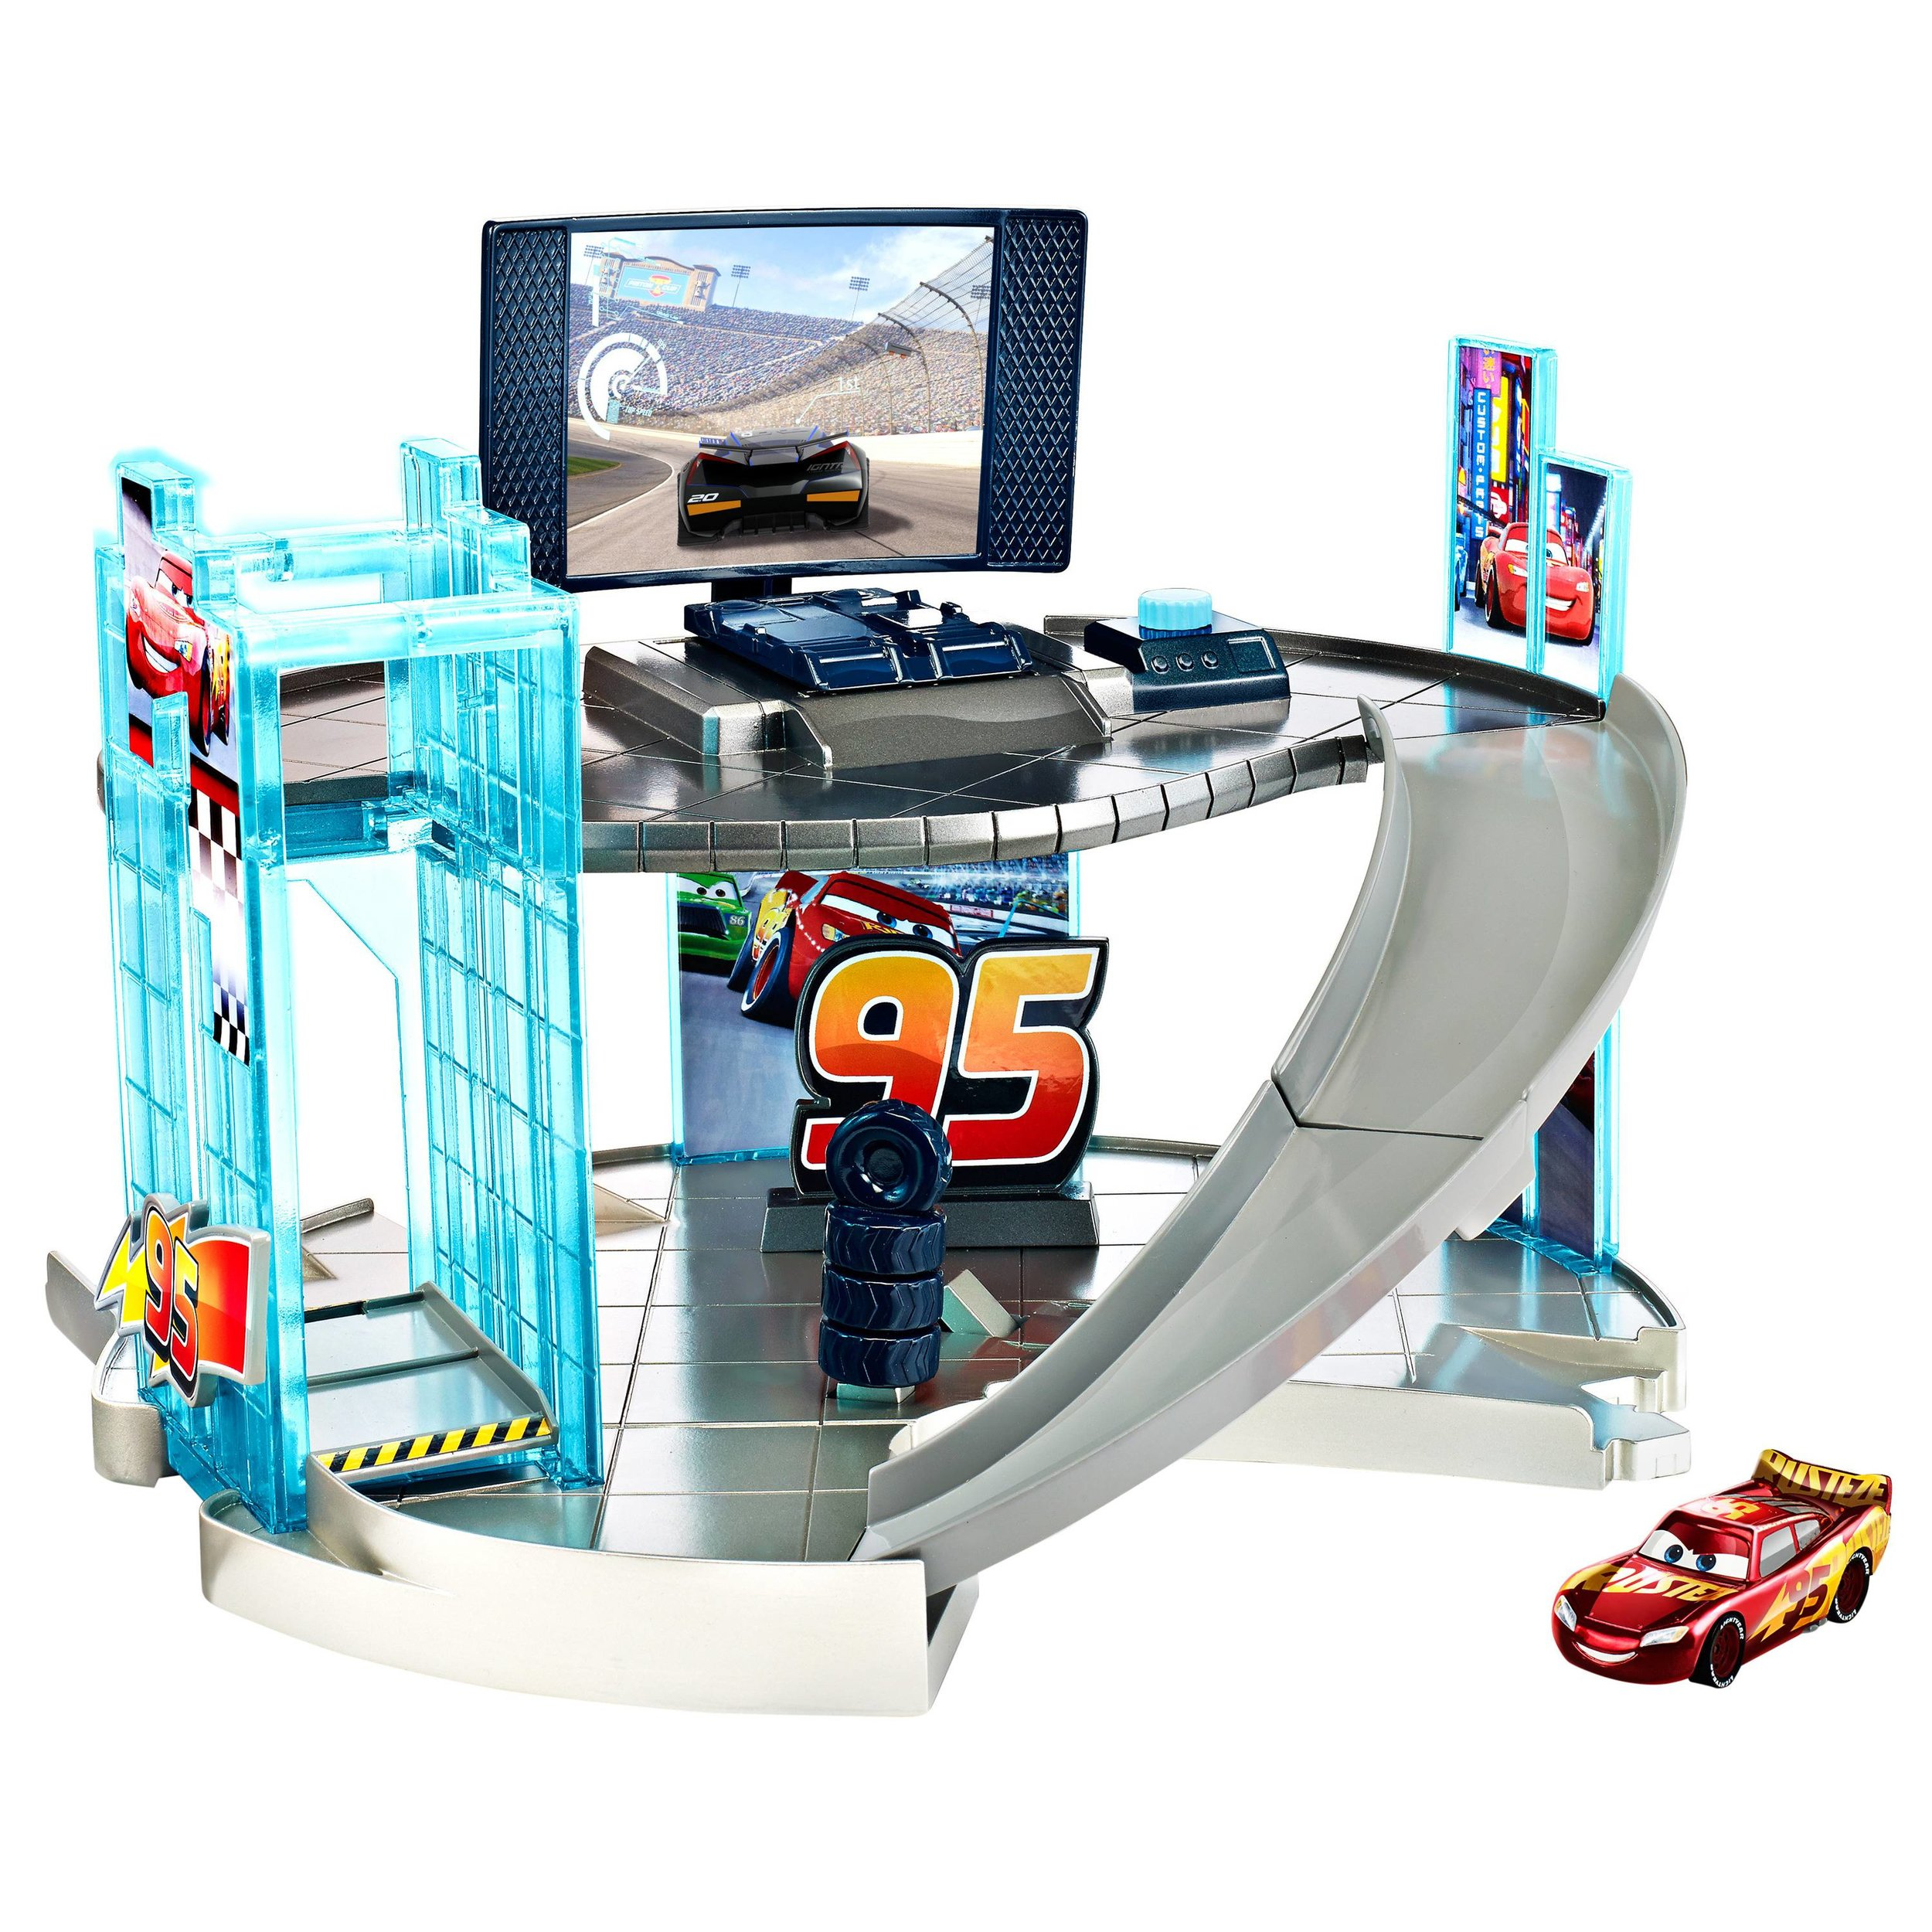 RACING CENTER... - because they love to race and they need a home base